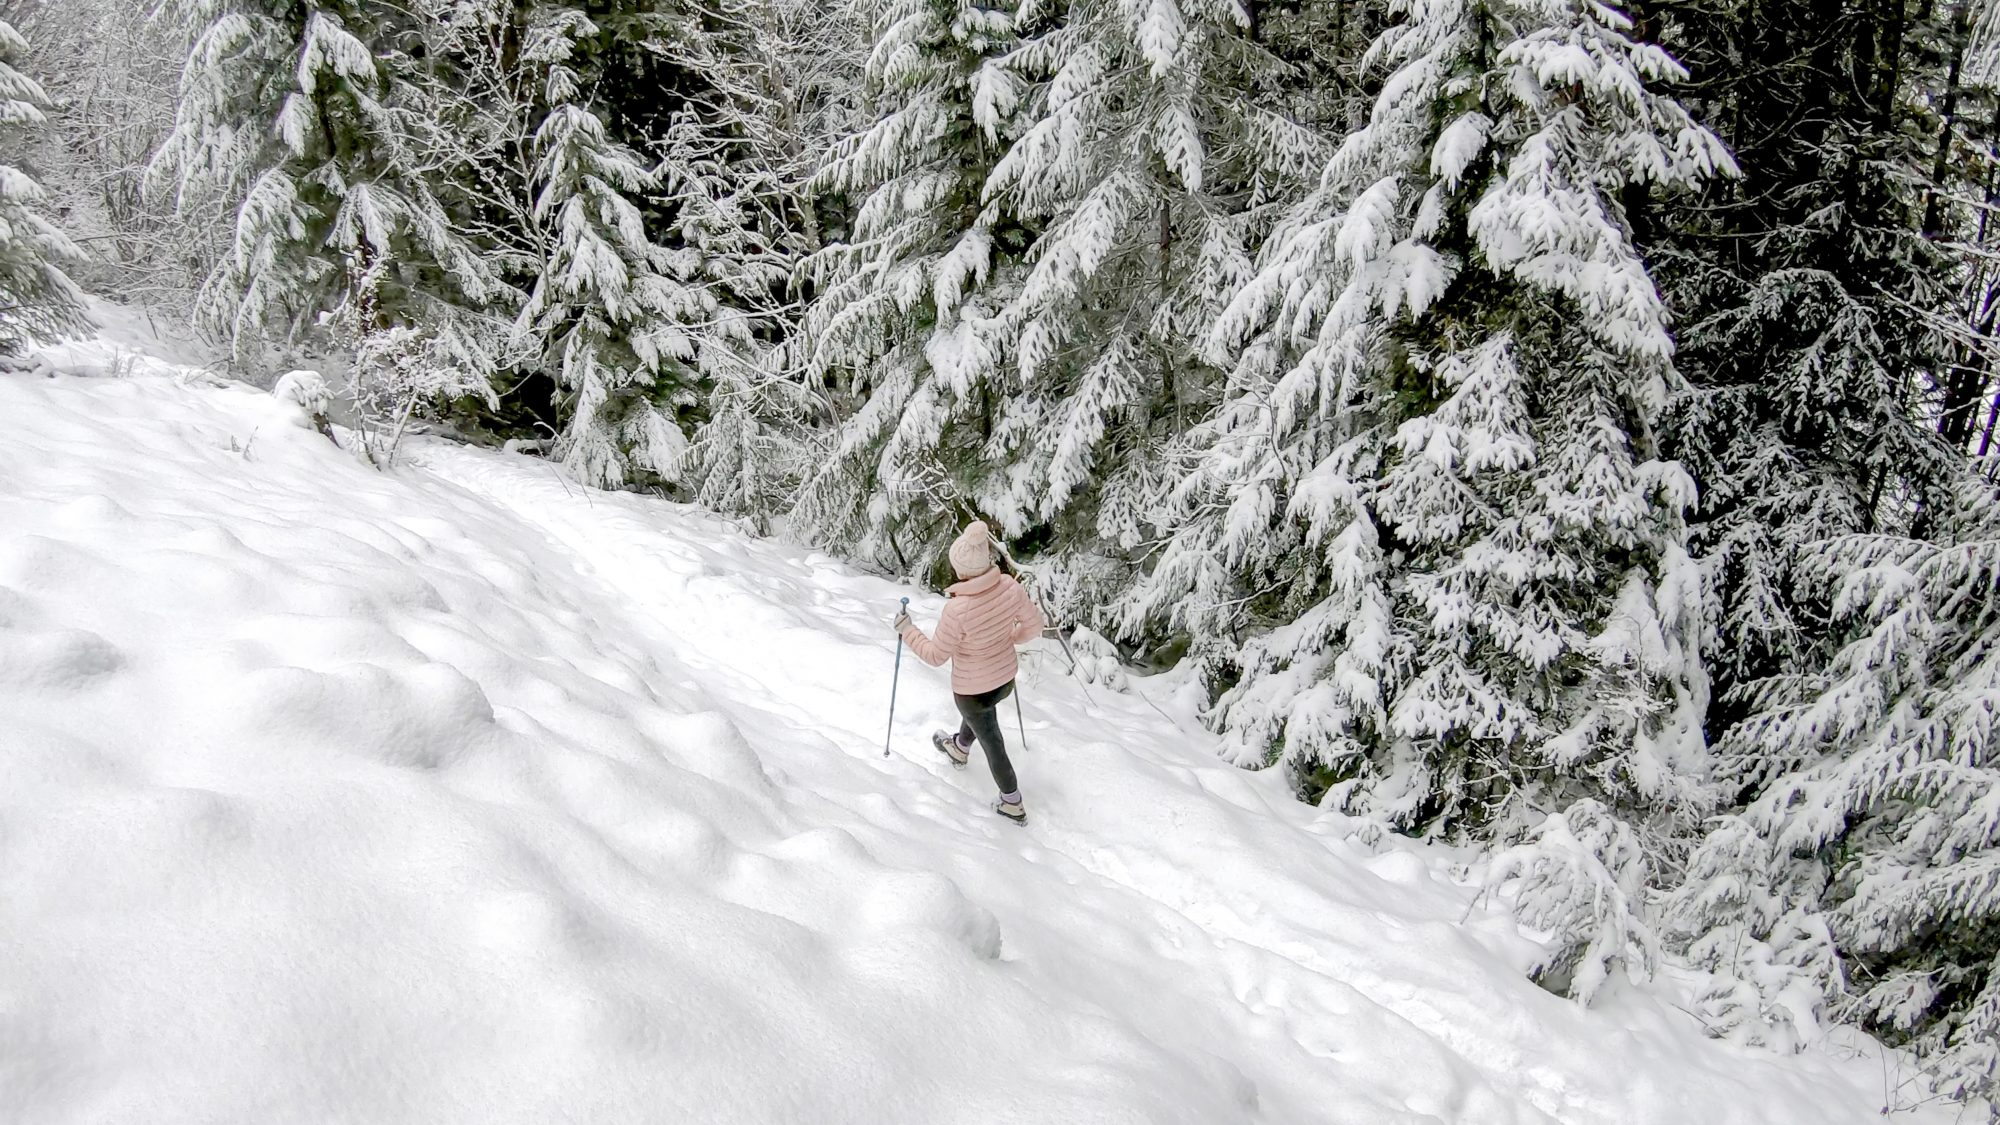 Winter activities, things to do in winter during a pandemic - person snowshoeing